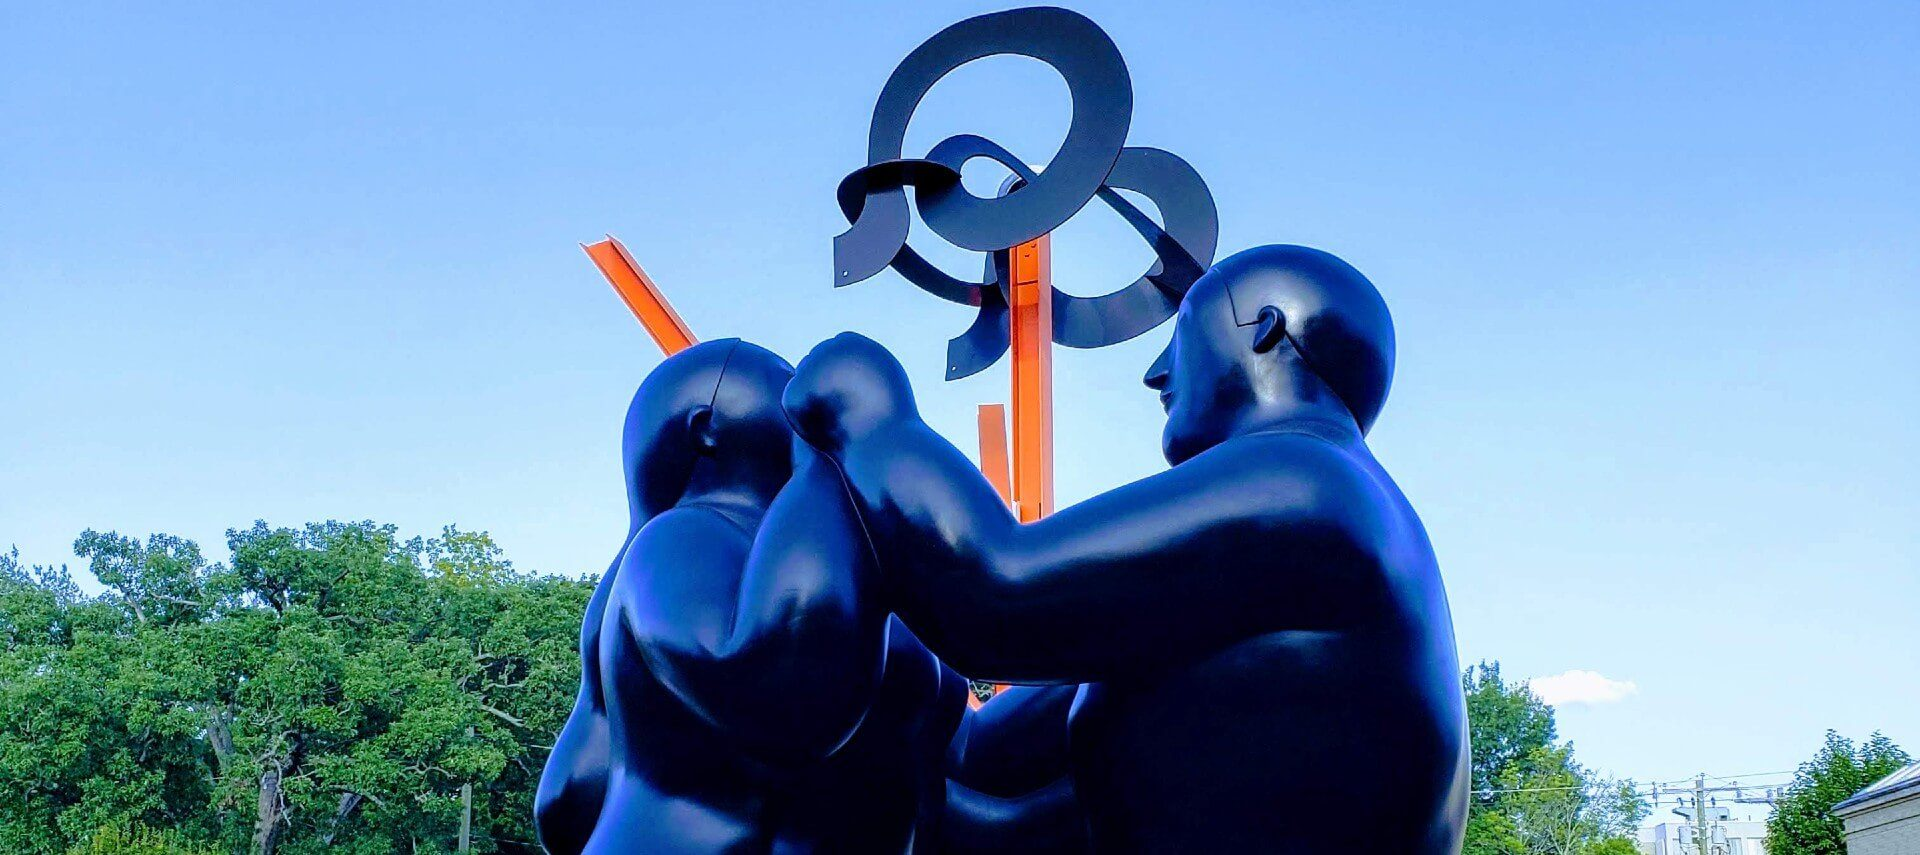 Large artistic sculpture depicting two people facing each other holding hands with orange spikes and circular designs above.